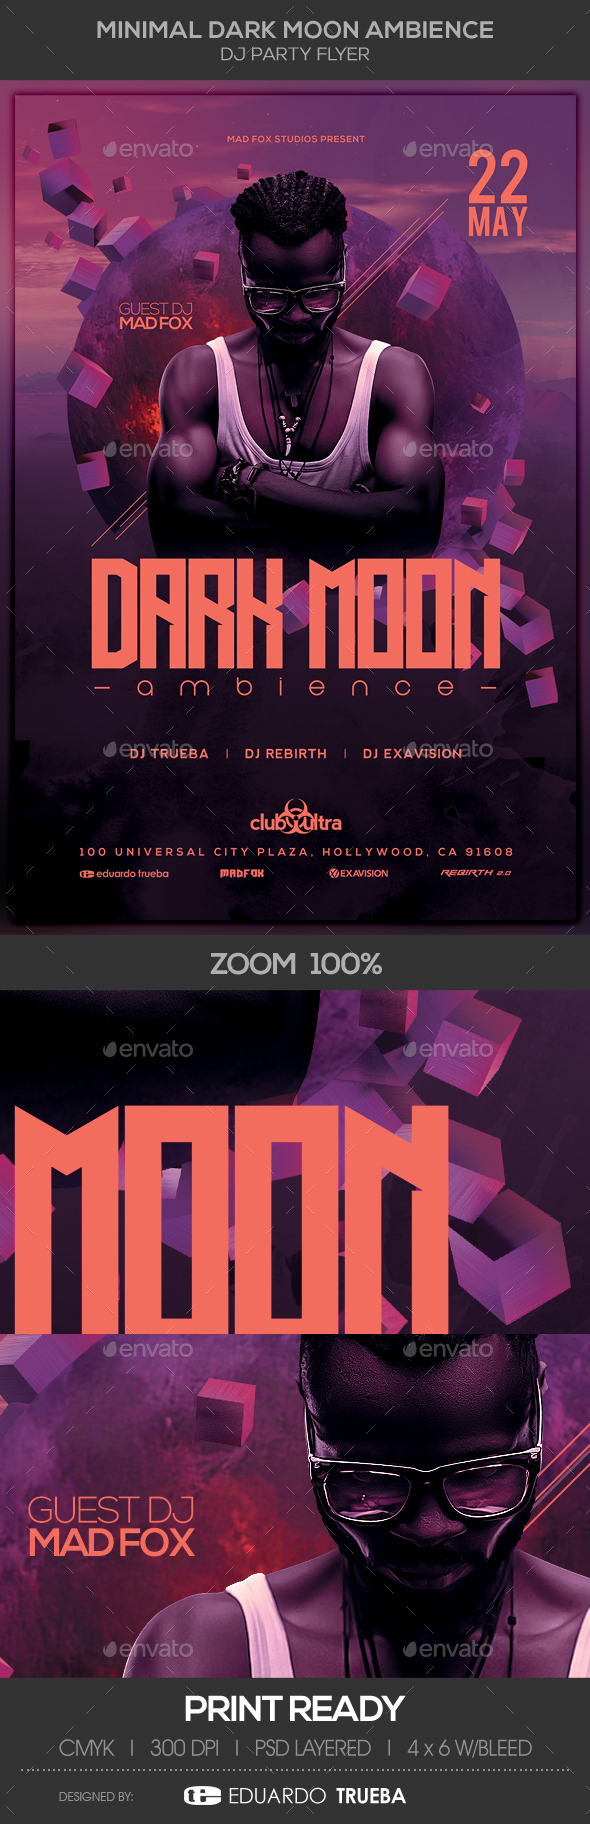 Minimal Dark Moon Ambience Dj Party Flyer - Clubs & Parties Events